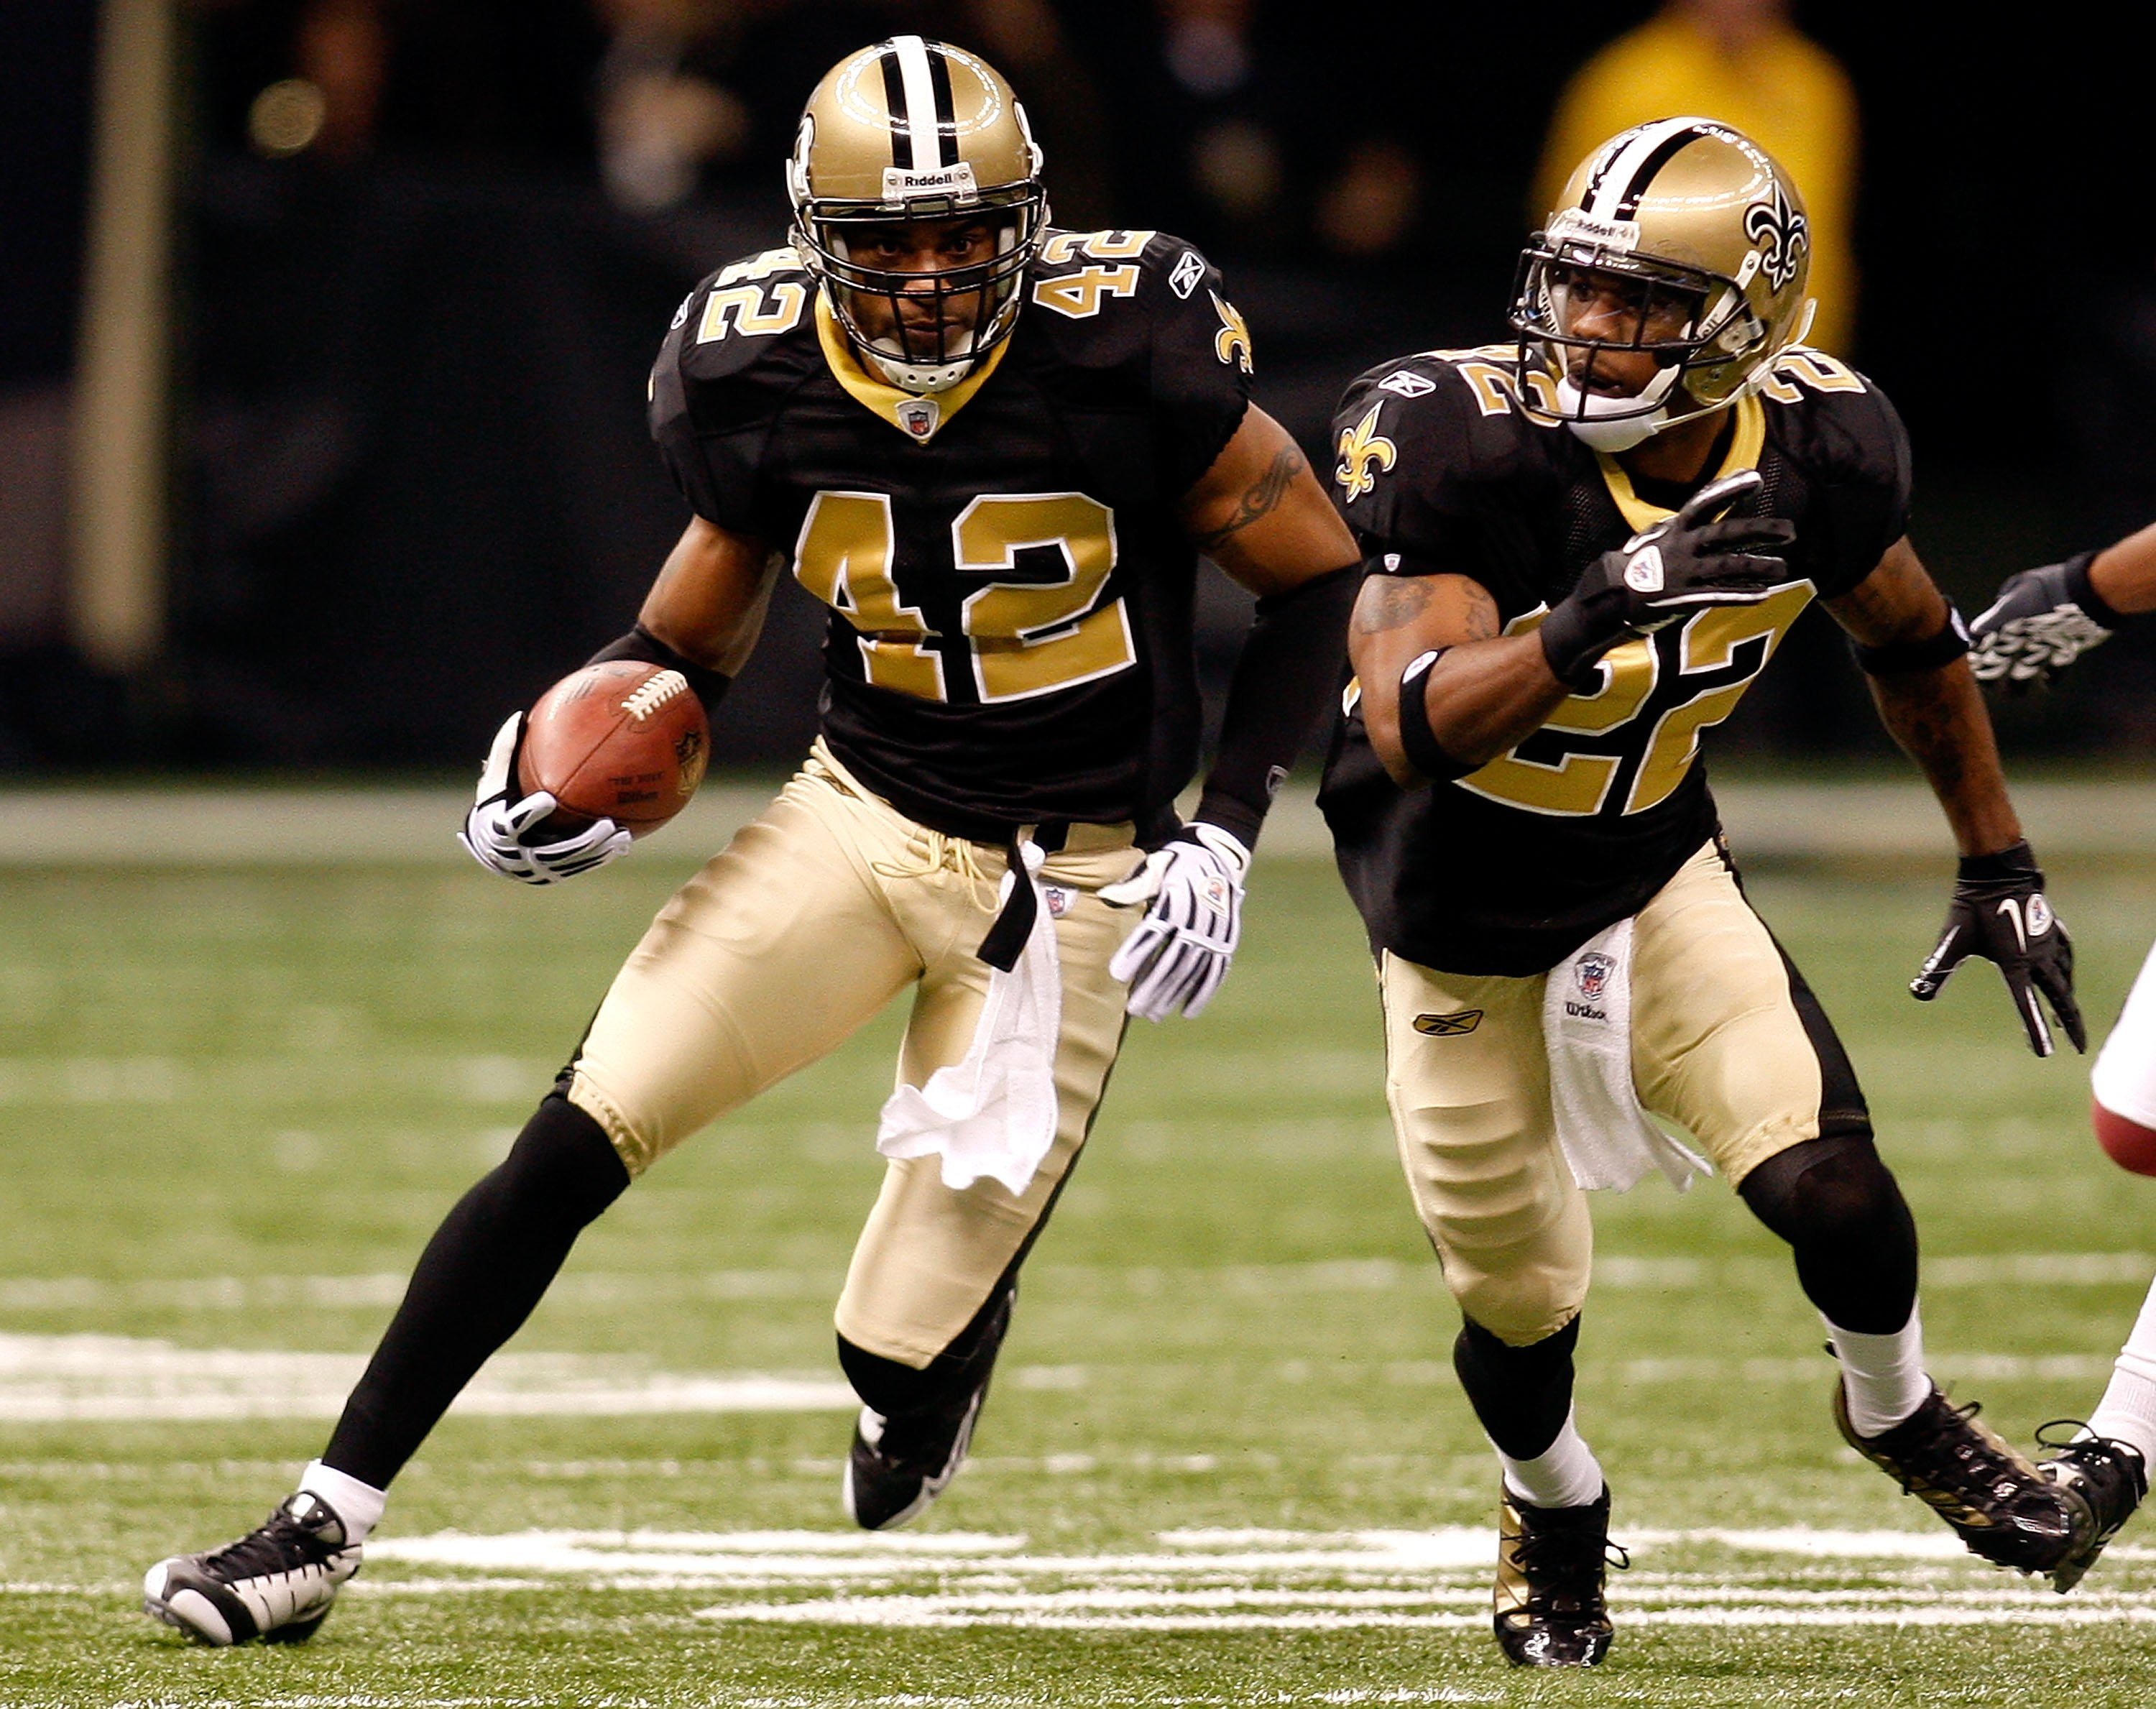 NEW ORLEANS - JANUARY 16:  Darren Sharper #42 of the New Orleans Saints returns a fumble recovery for positive yards as Tracy Porter #22 looks to block against the Arizona Cardinals during the NFC Divisional Playoff Game at Louisana Superdome on January 1